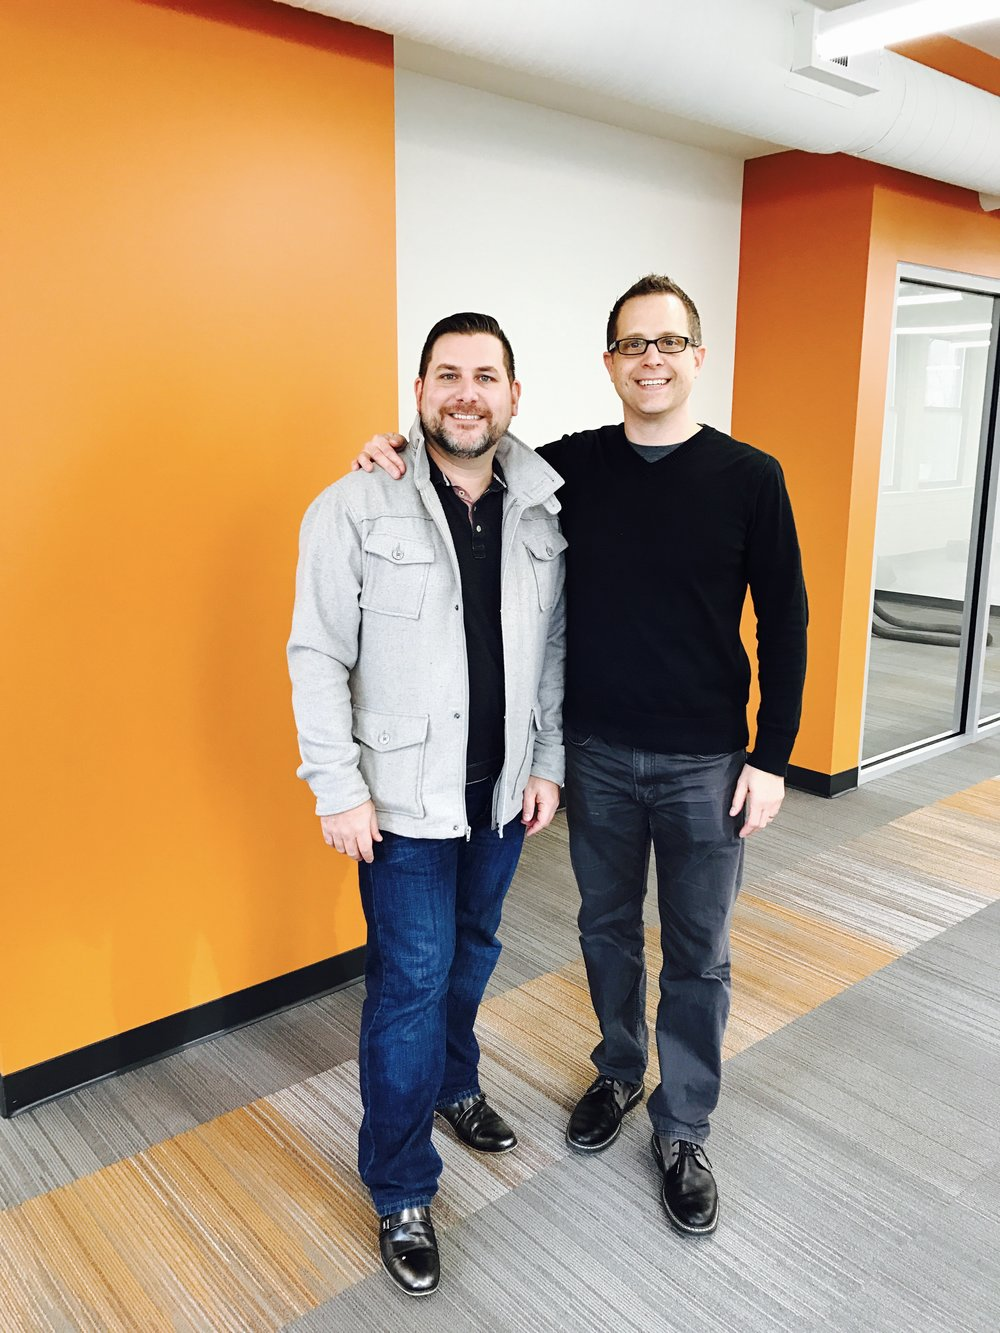 Rod and Todd enjoying the new office at 155 East Market Street in downtown Indianapolis